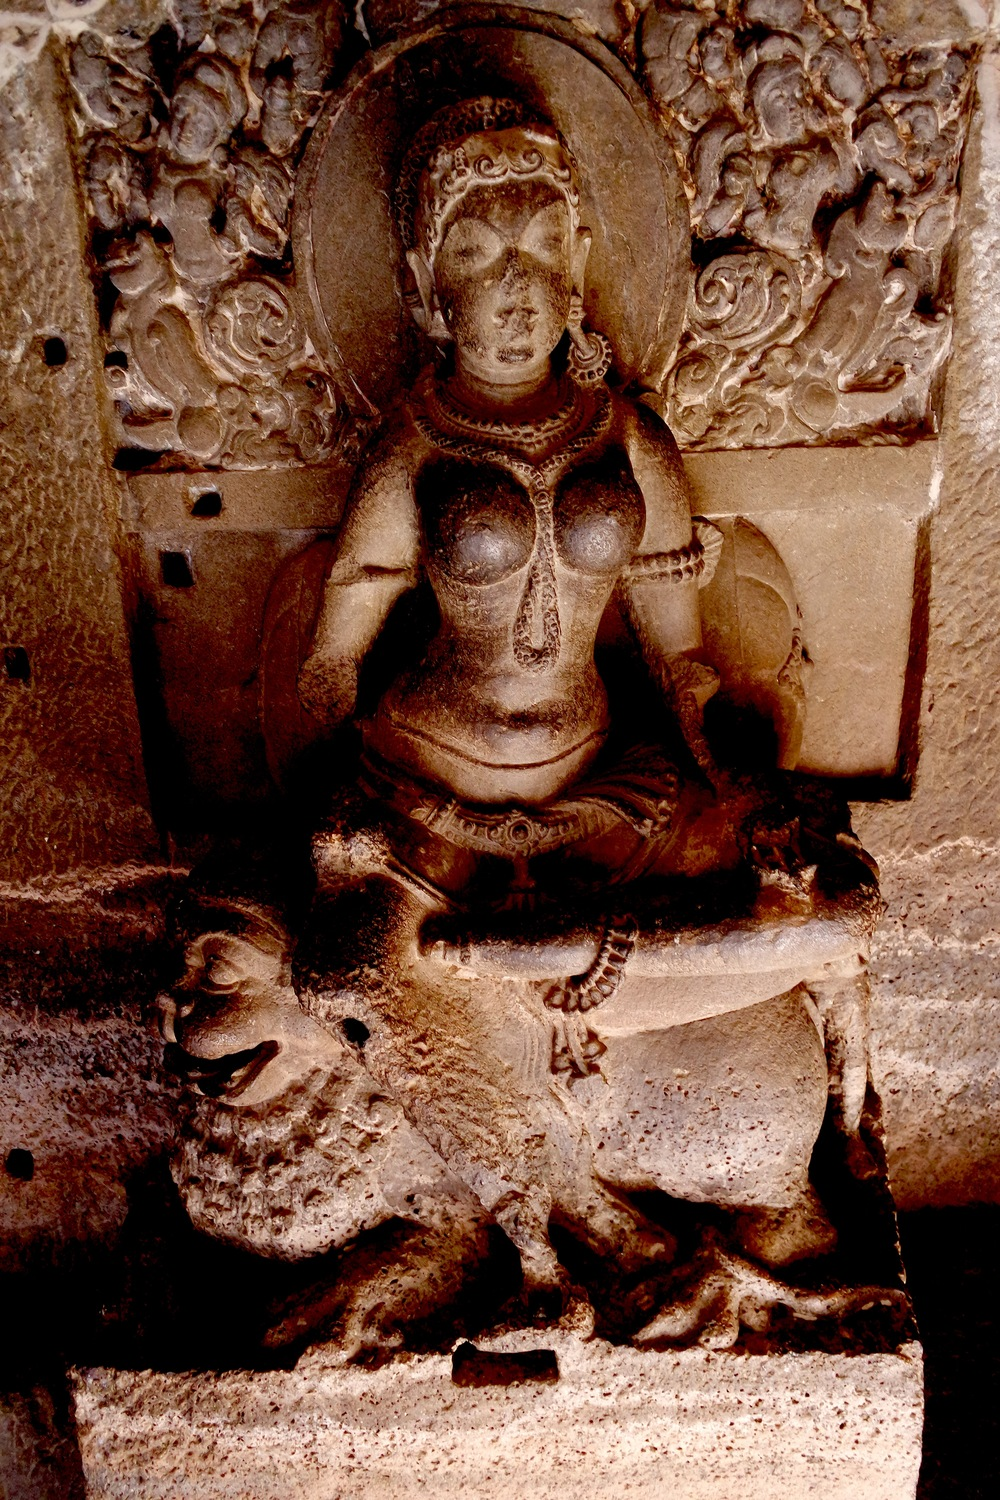 This statue in Cave 32 depicts either Ambika, the Jain mother goddess, or Siddhayika, a yakshini, or fairy-like creature. She's seated upon a lion beneath a tree heavy with fruit